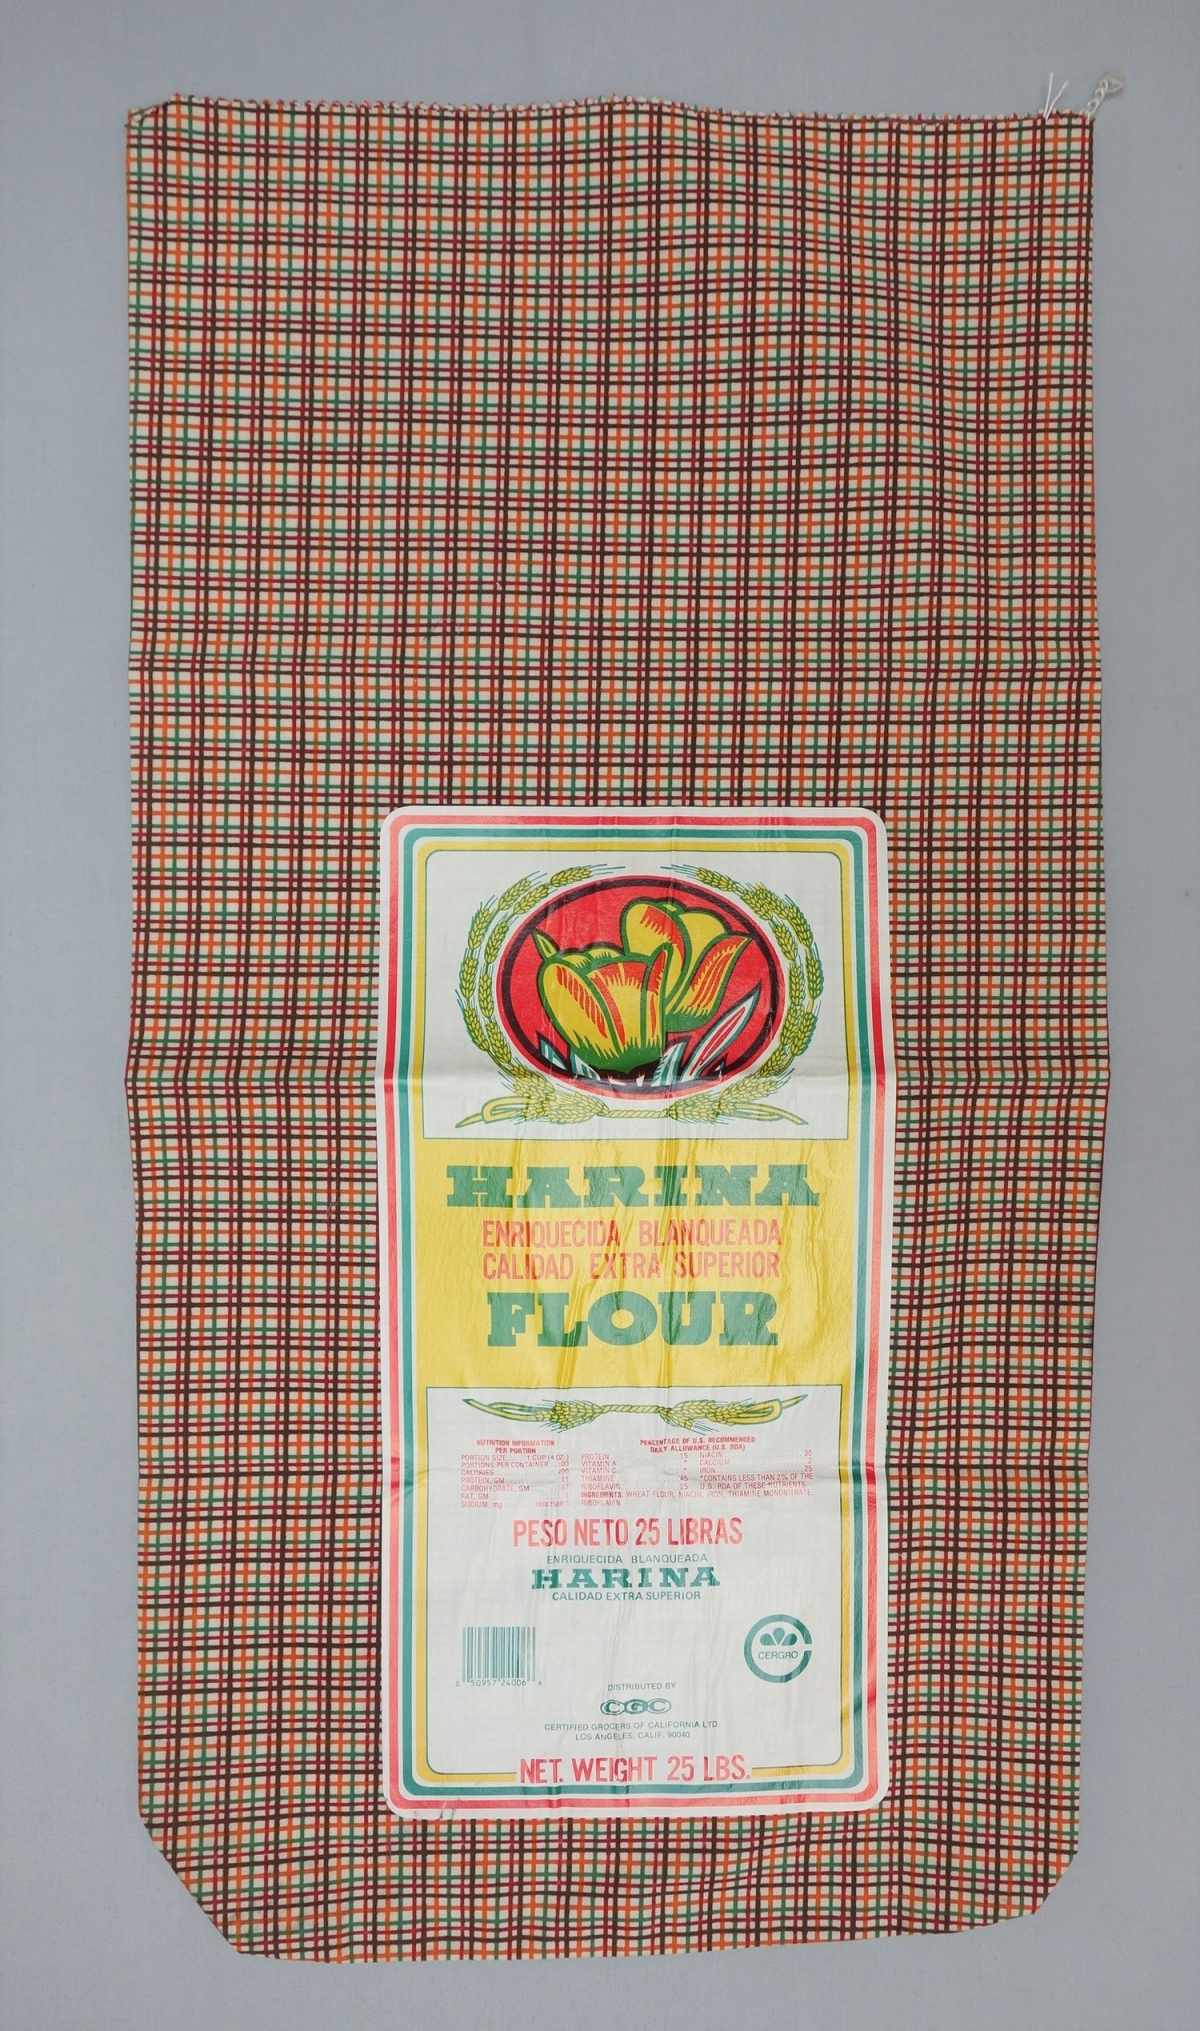 Large sack made from cotton with a printed checked design in brown, dark red, green and orange. With barcode. USA, 1960's (TRC 2017.3013).